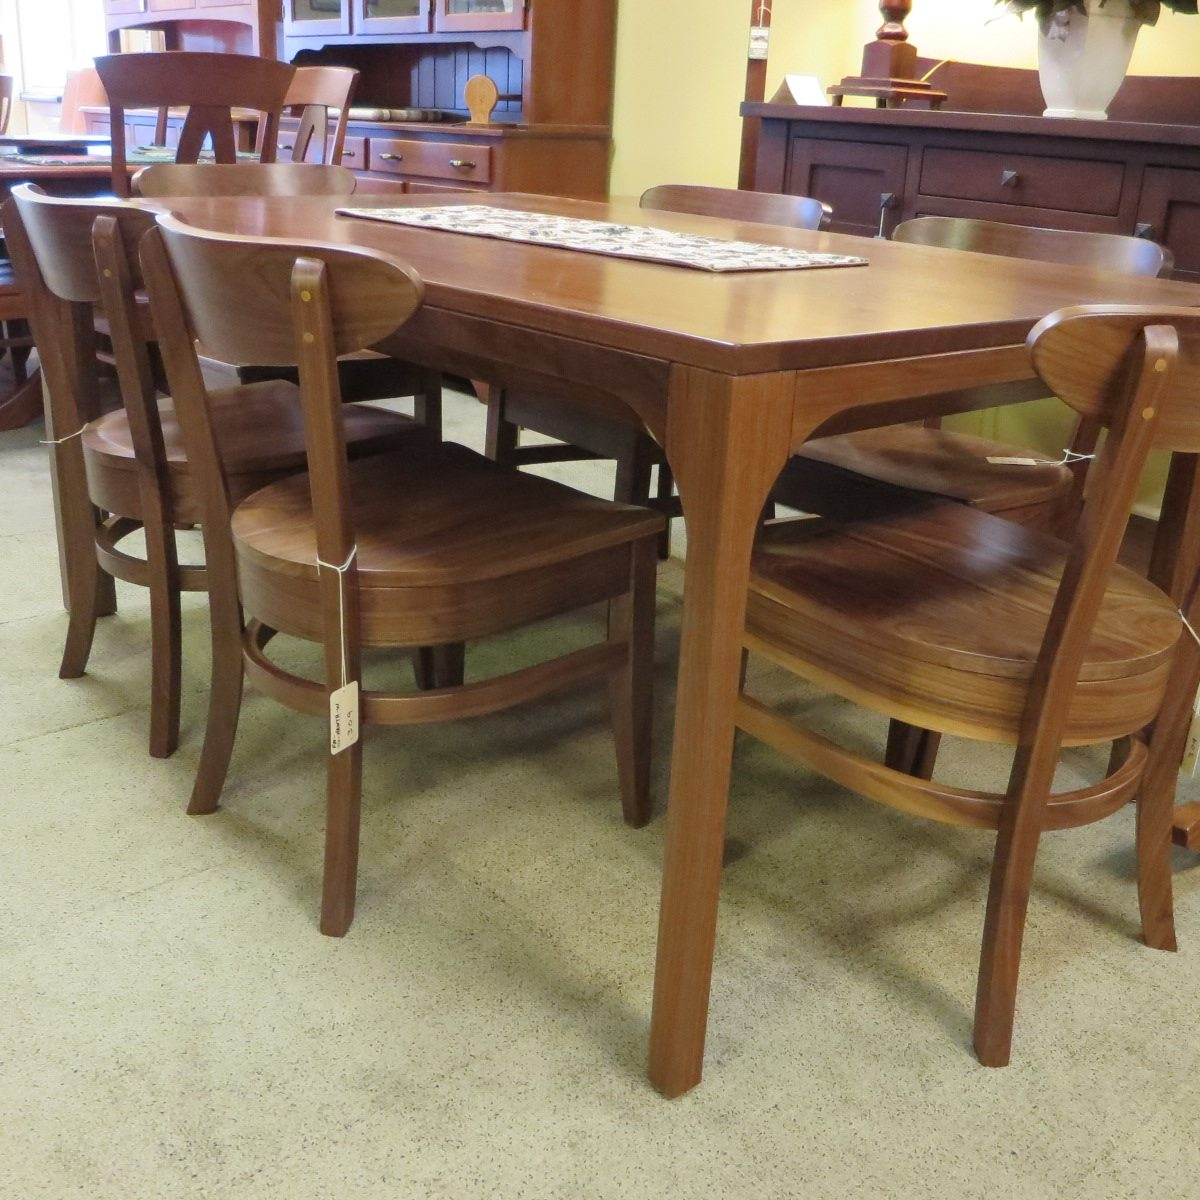 Contemporary / Modern Tables For Sale In Dayton Cincinnati Ohio Within Most Recently Released Cincinnati 3 Piece Dining Sets (View 17 of 20)